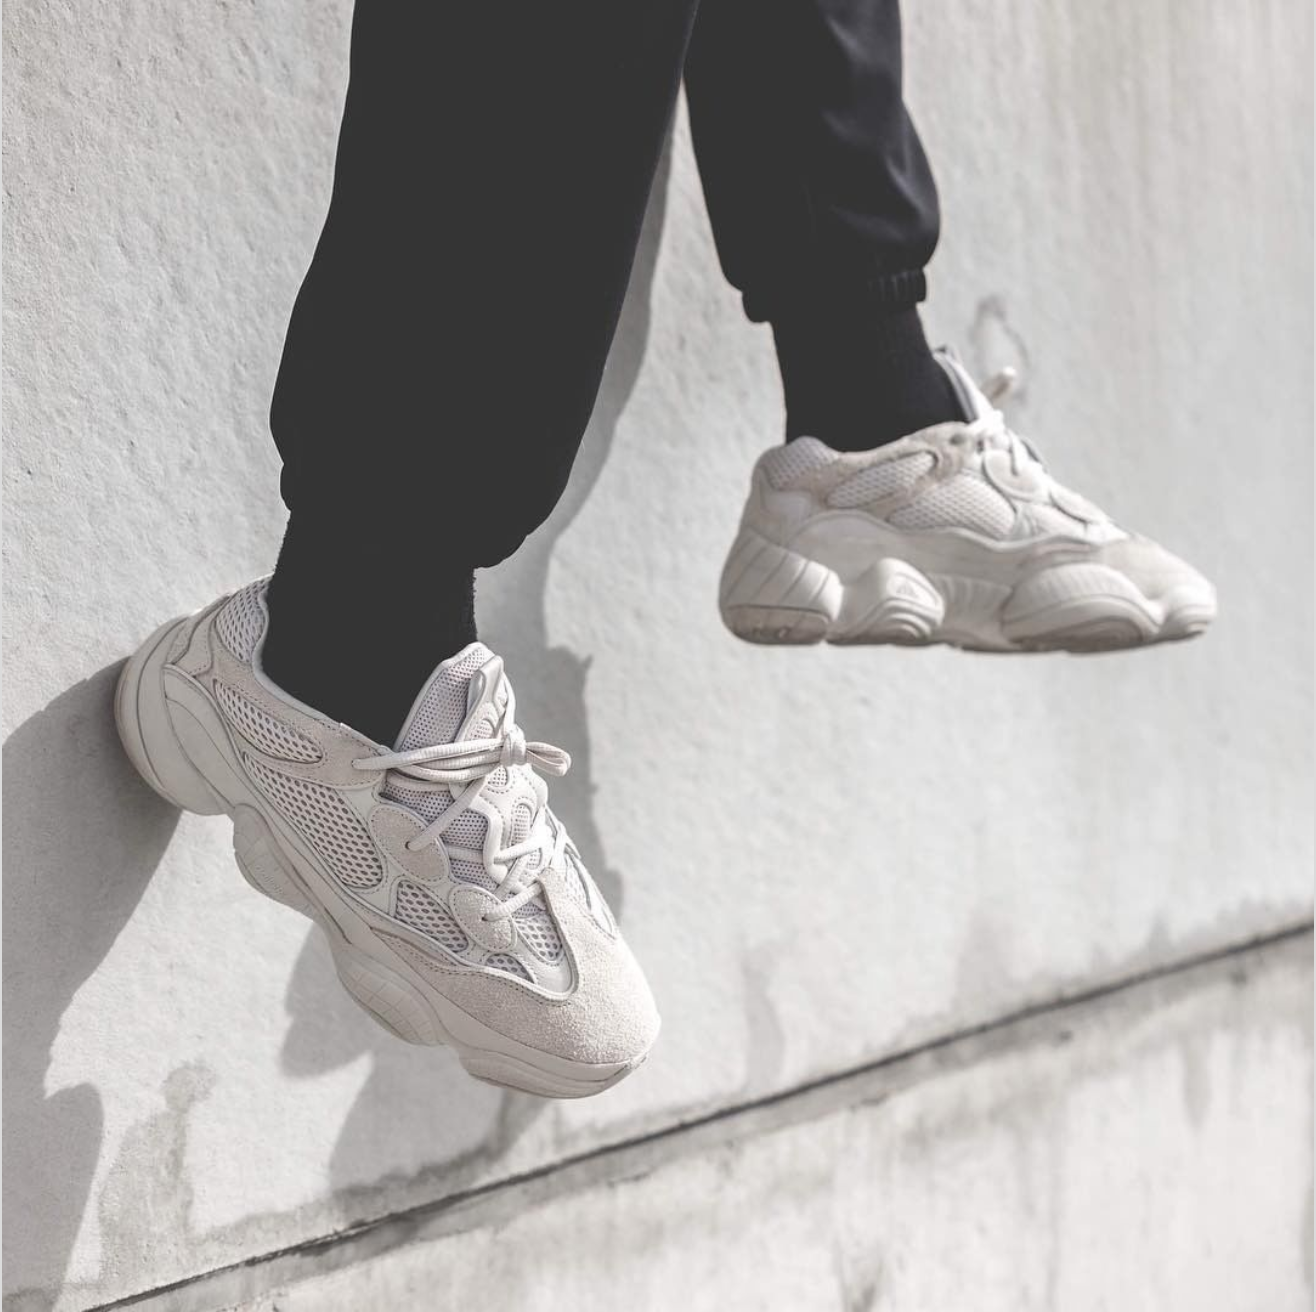 ebca37ade1d9f adidas Yeezy 500 'Desert Rat' - Sneaker Myth | MENS SHOES in 2019 ...